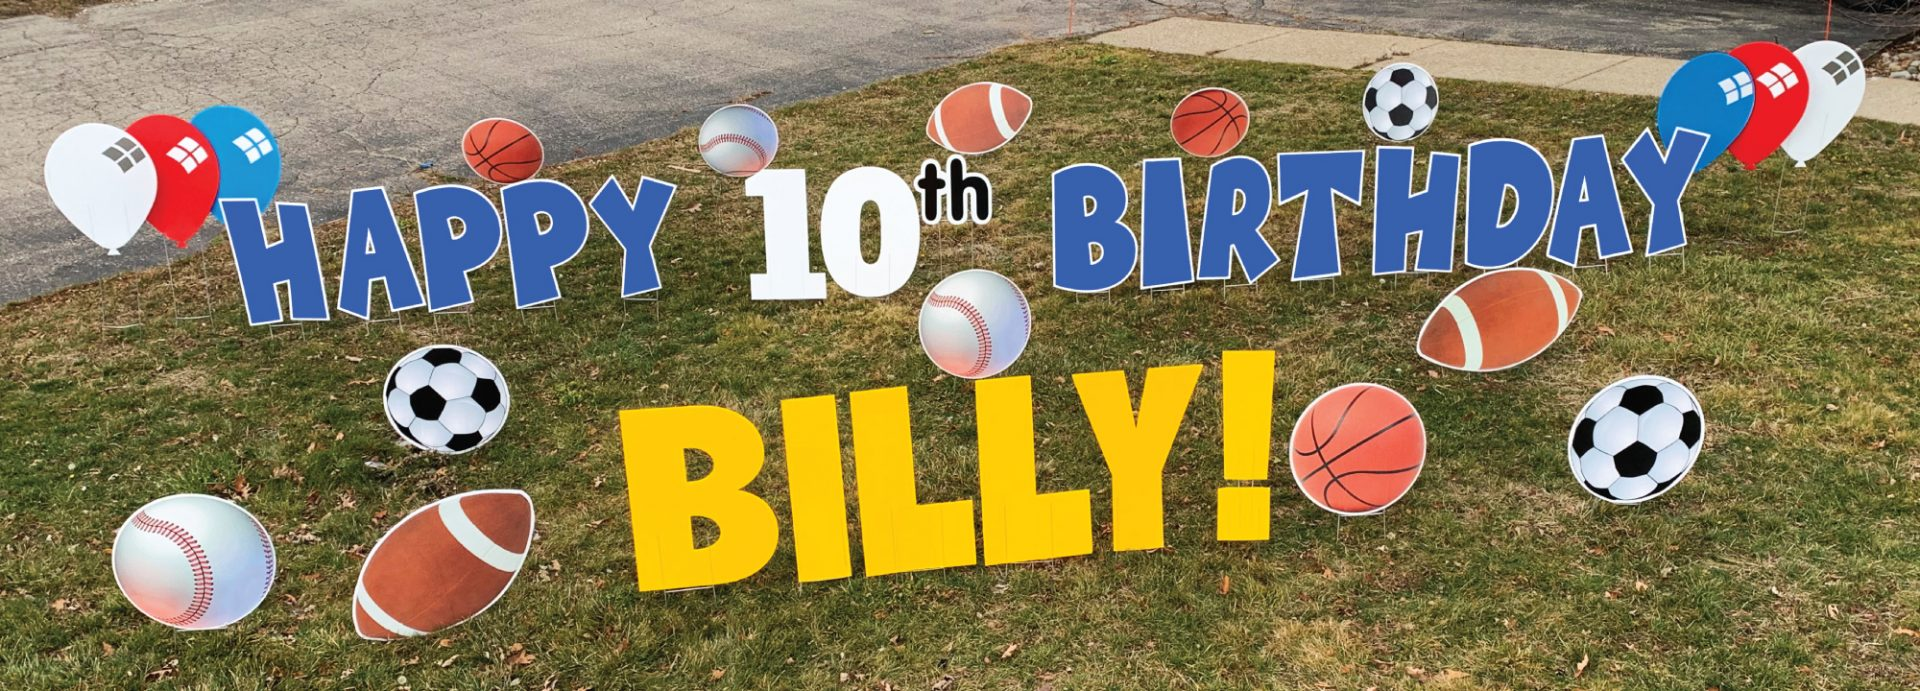 Happy Birthday Sports with blue letters yard greetings cards lawns signs